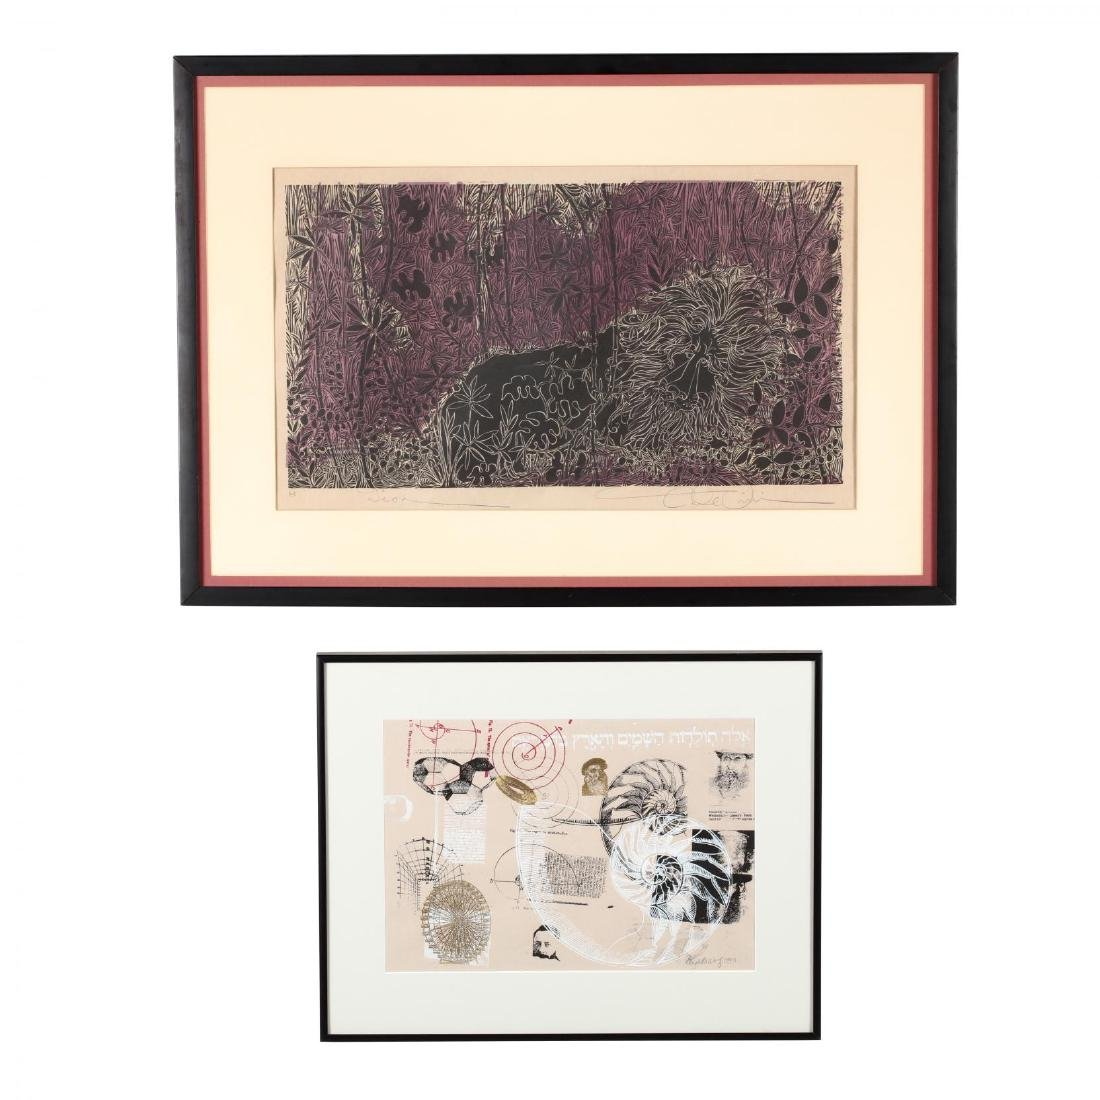 Two 20th Century Woodblock Prints - Elizabeth Wolf and